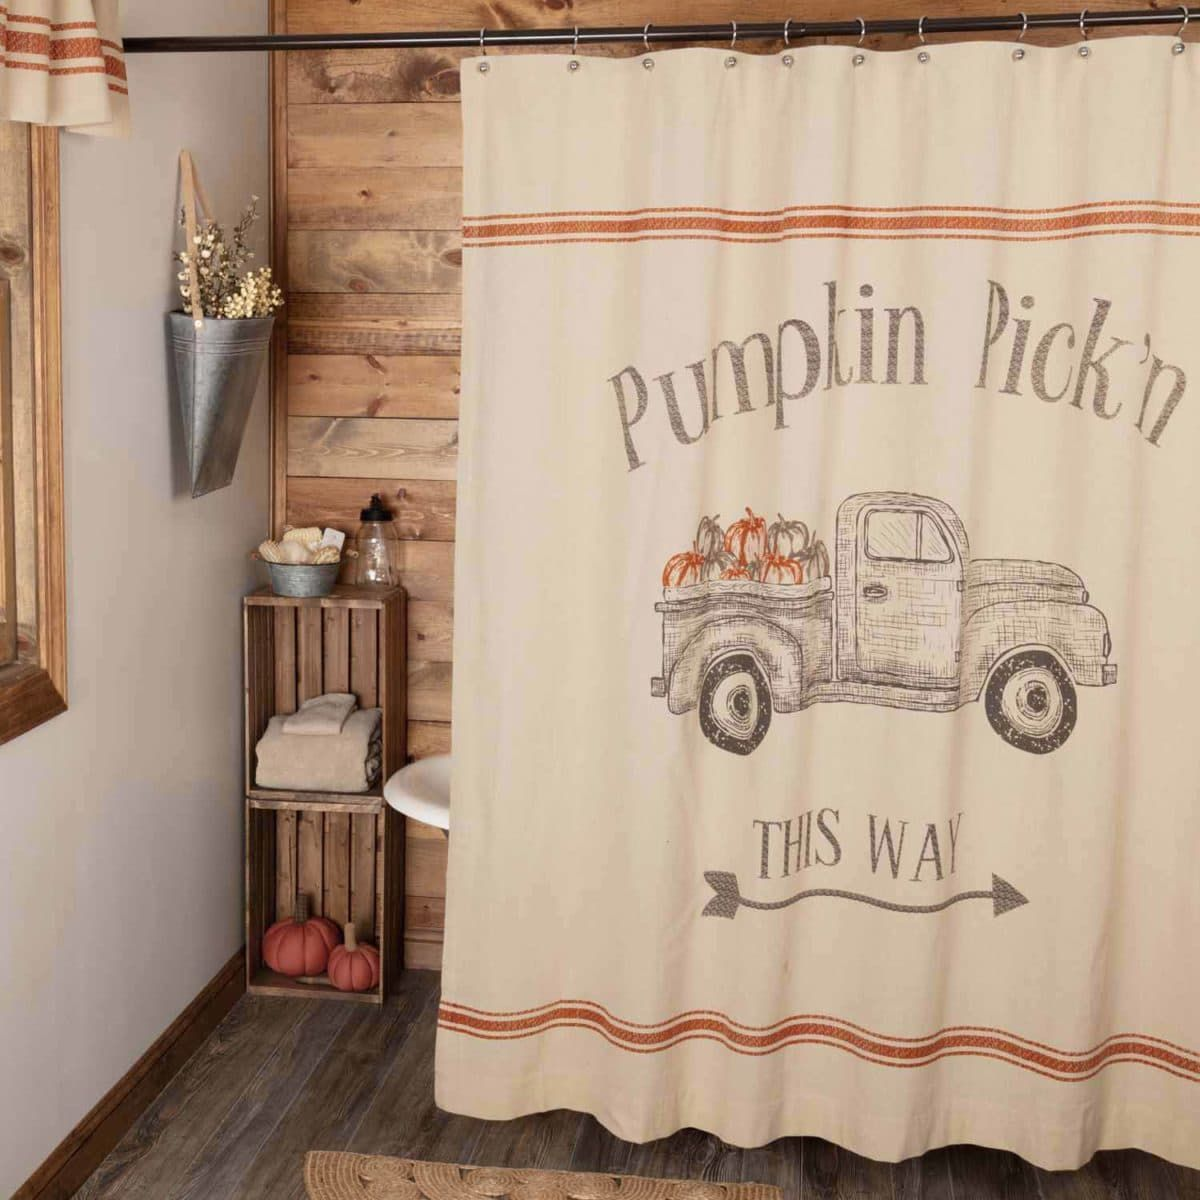 Harvest Market Truck Shower Curtain Fall Decor 2019 In 2019